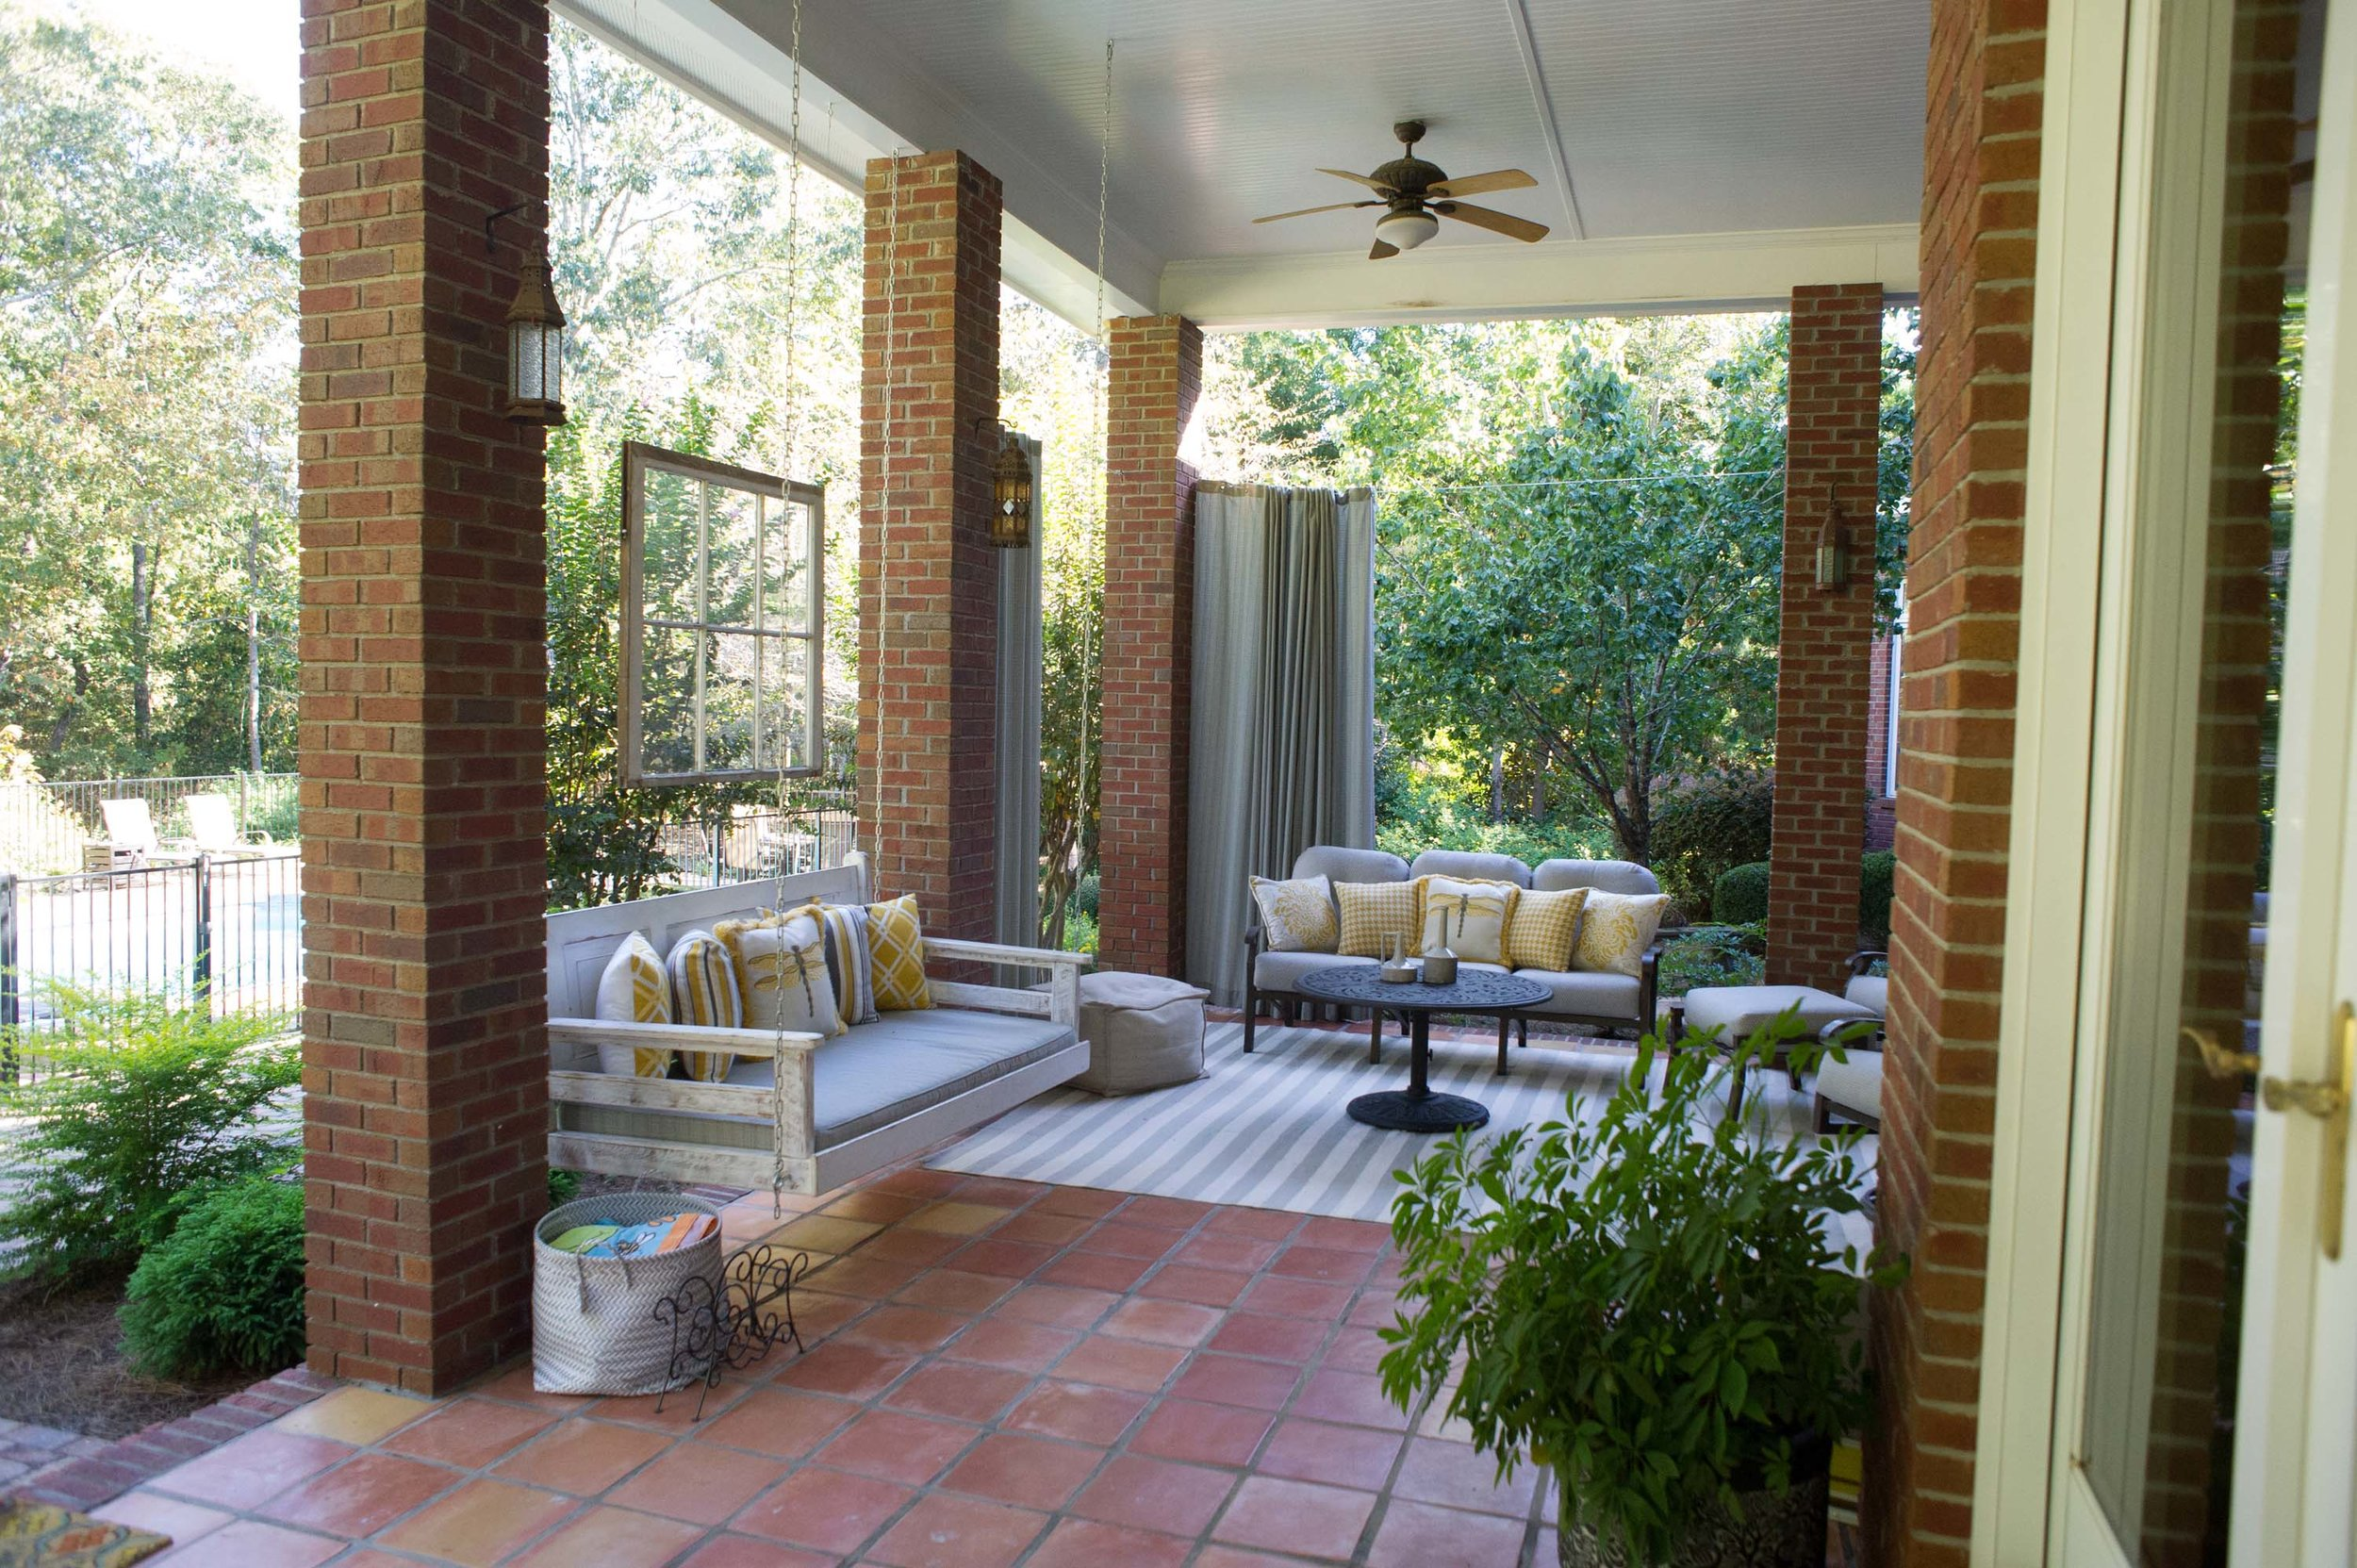 Outdoor patio with green plant, sofa set, customized hanging sofa and ceiling fan